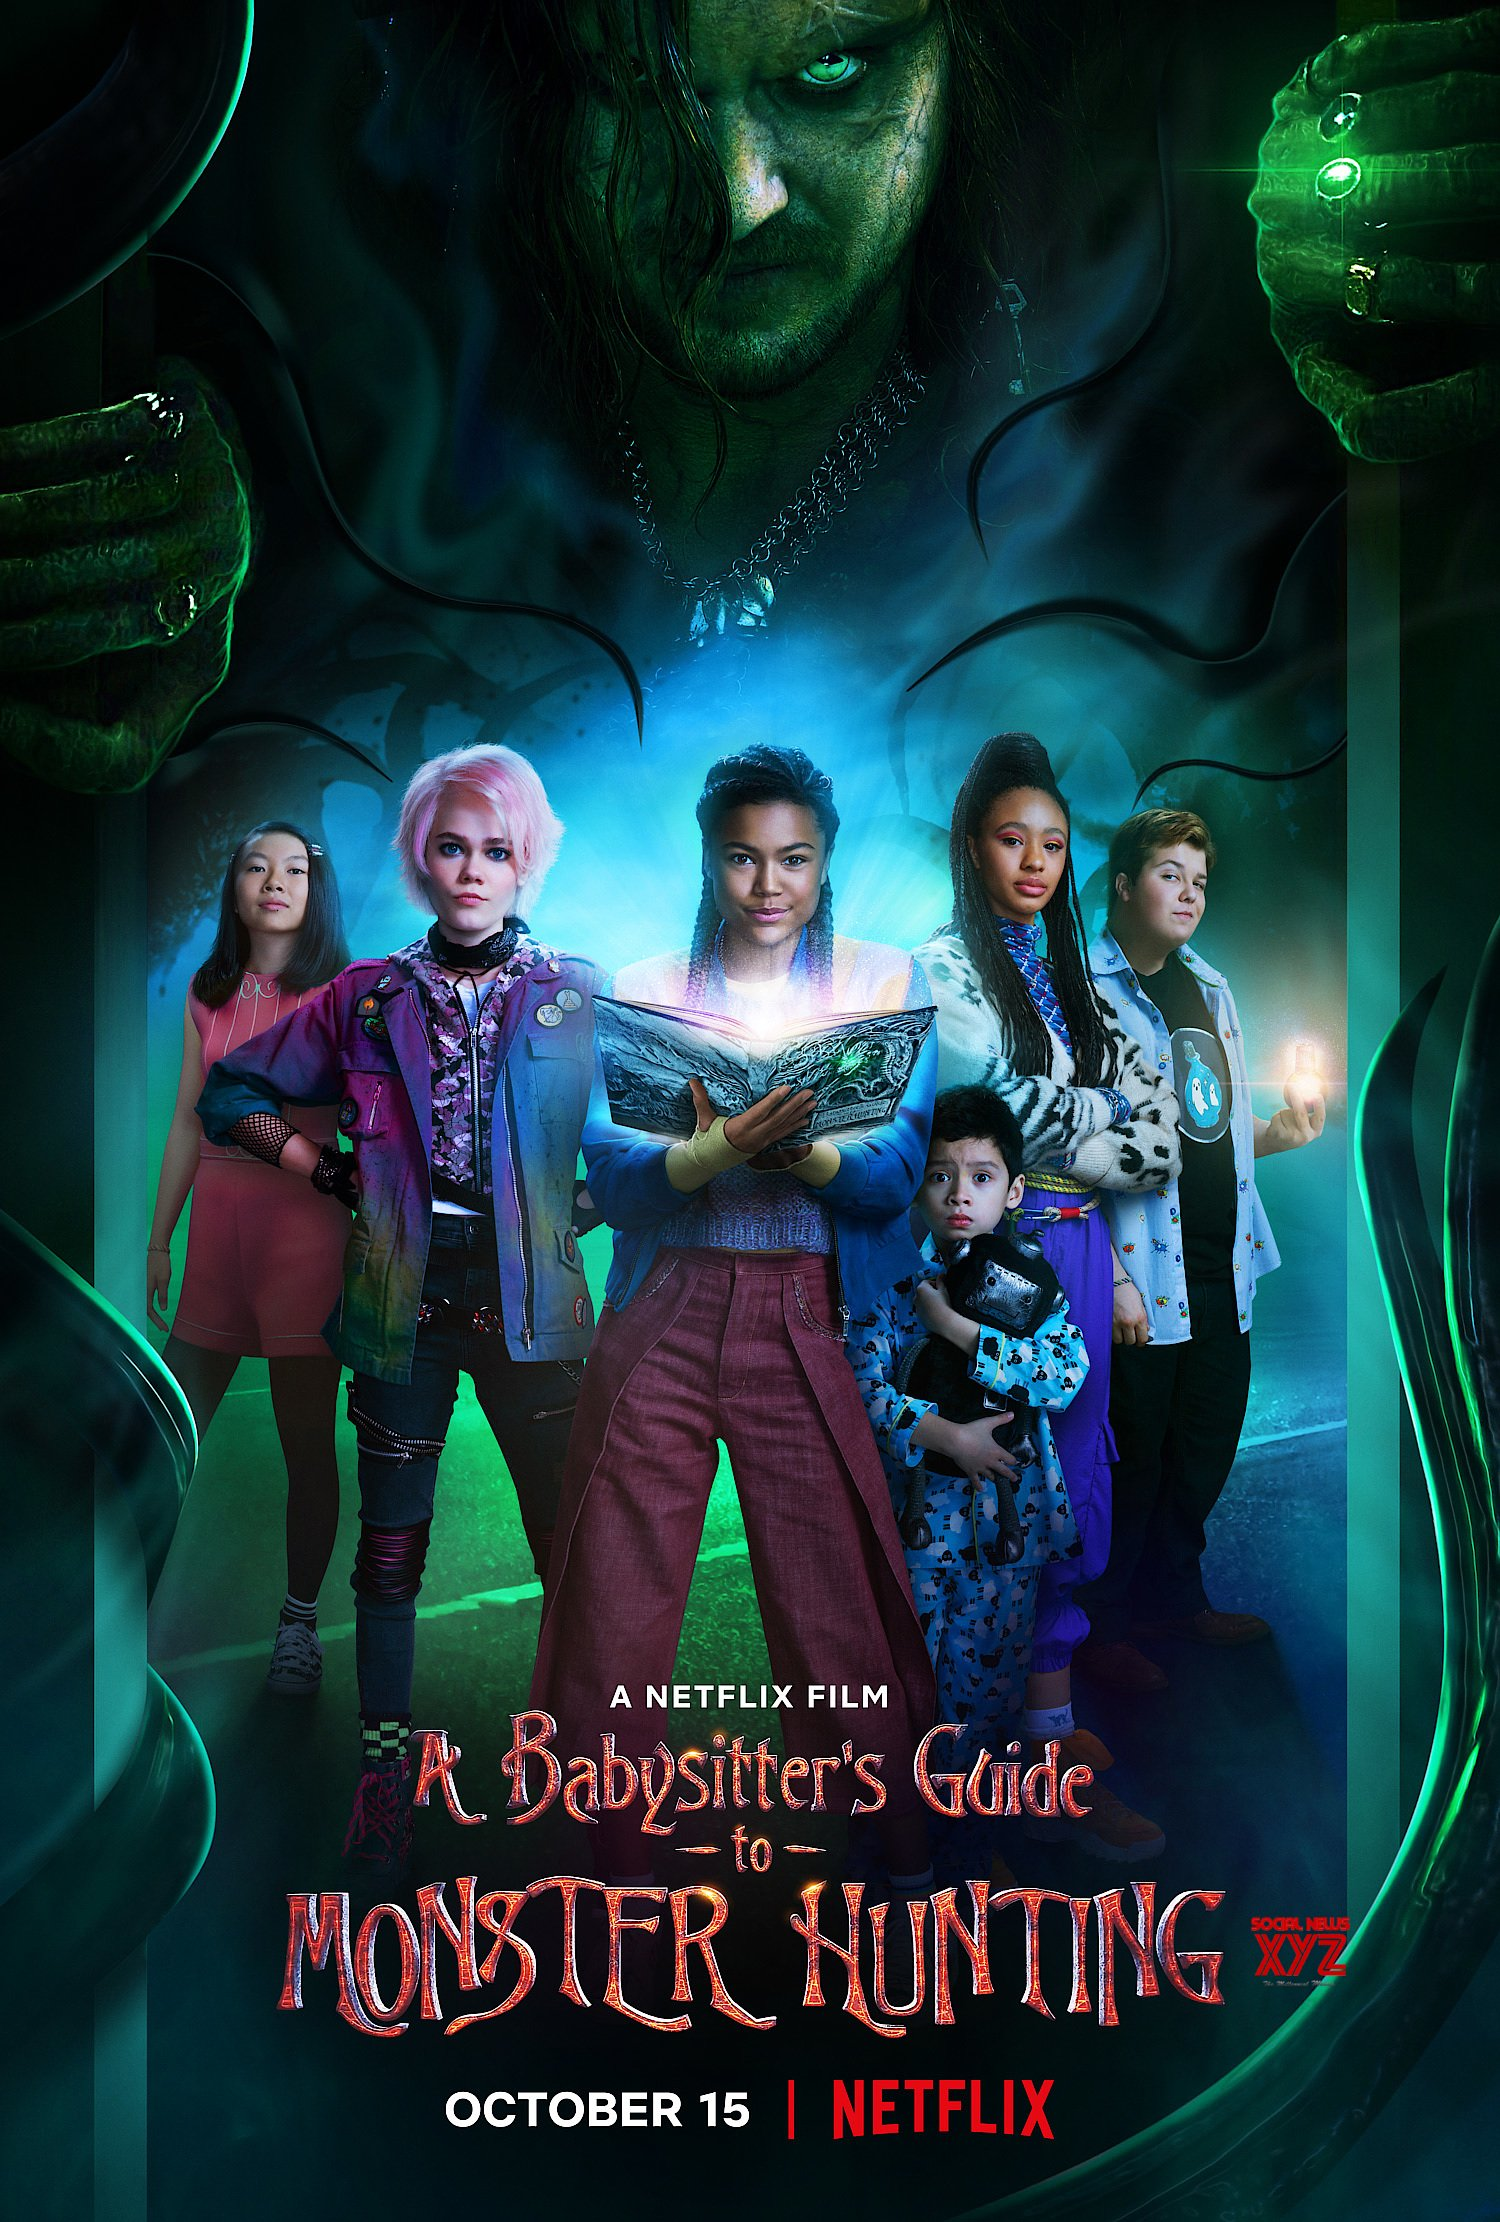 A Babysitters Guide To Monster Hunting Movie HD Poster - Social News XYZ